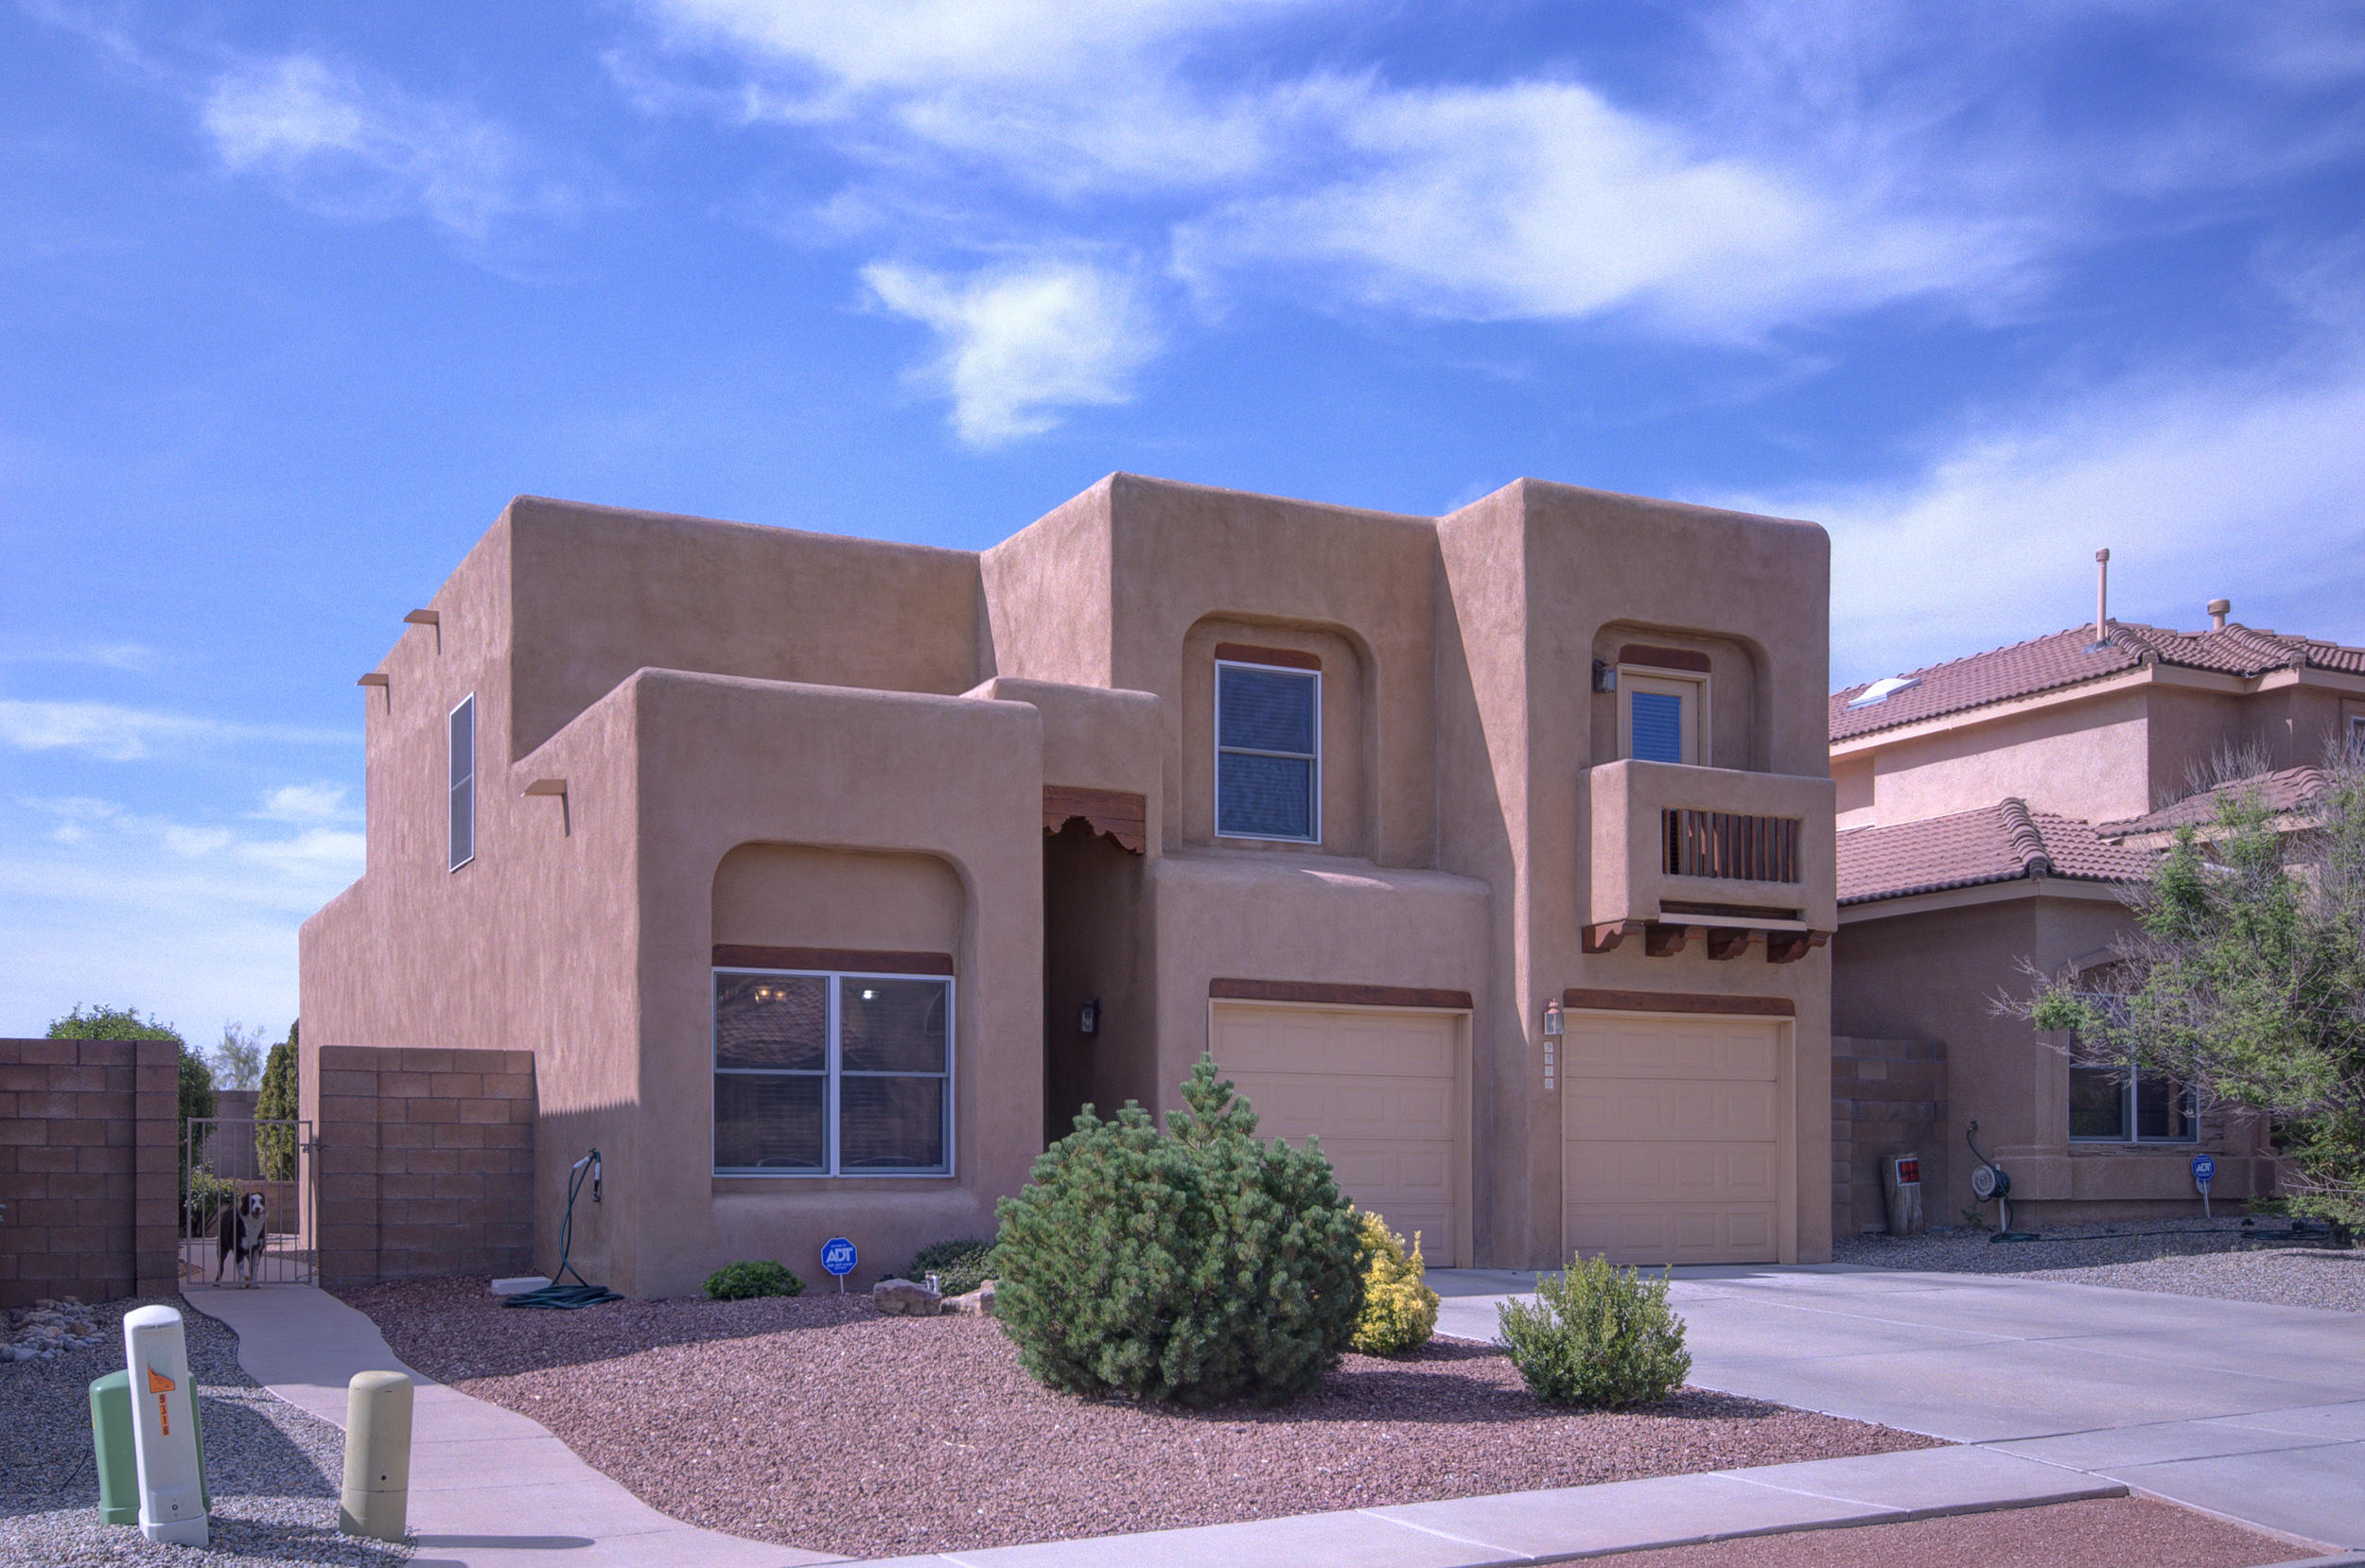 9320 NW Silica Avenue, Northwest Albuquerque and Northwest Heights, New Mexico